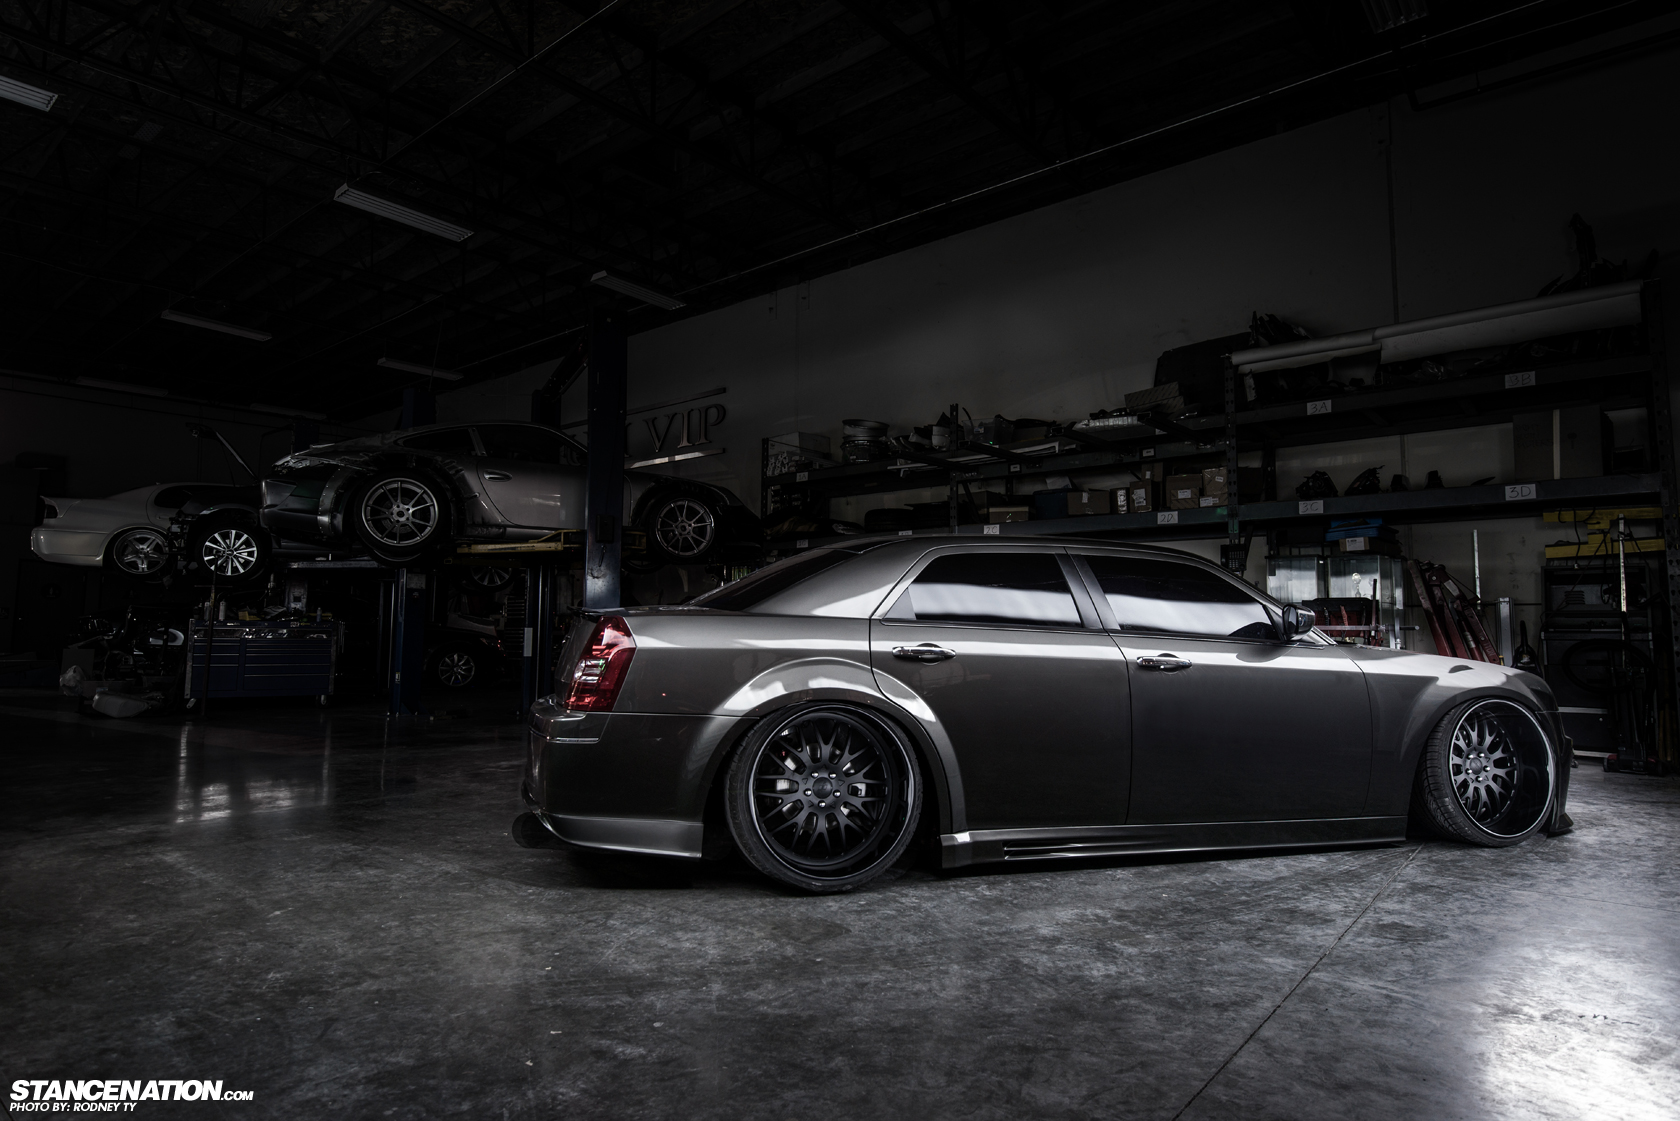 Platinum Vip X Liberty Walk Japan Slammed Chrysler 300